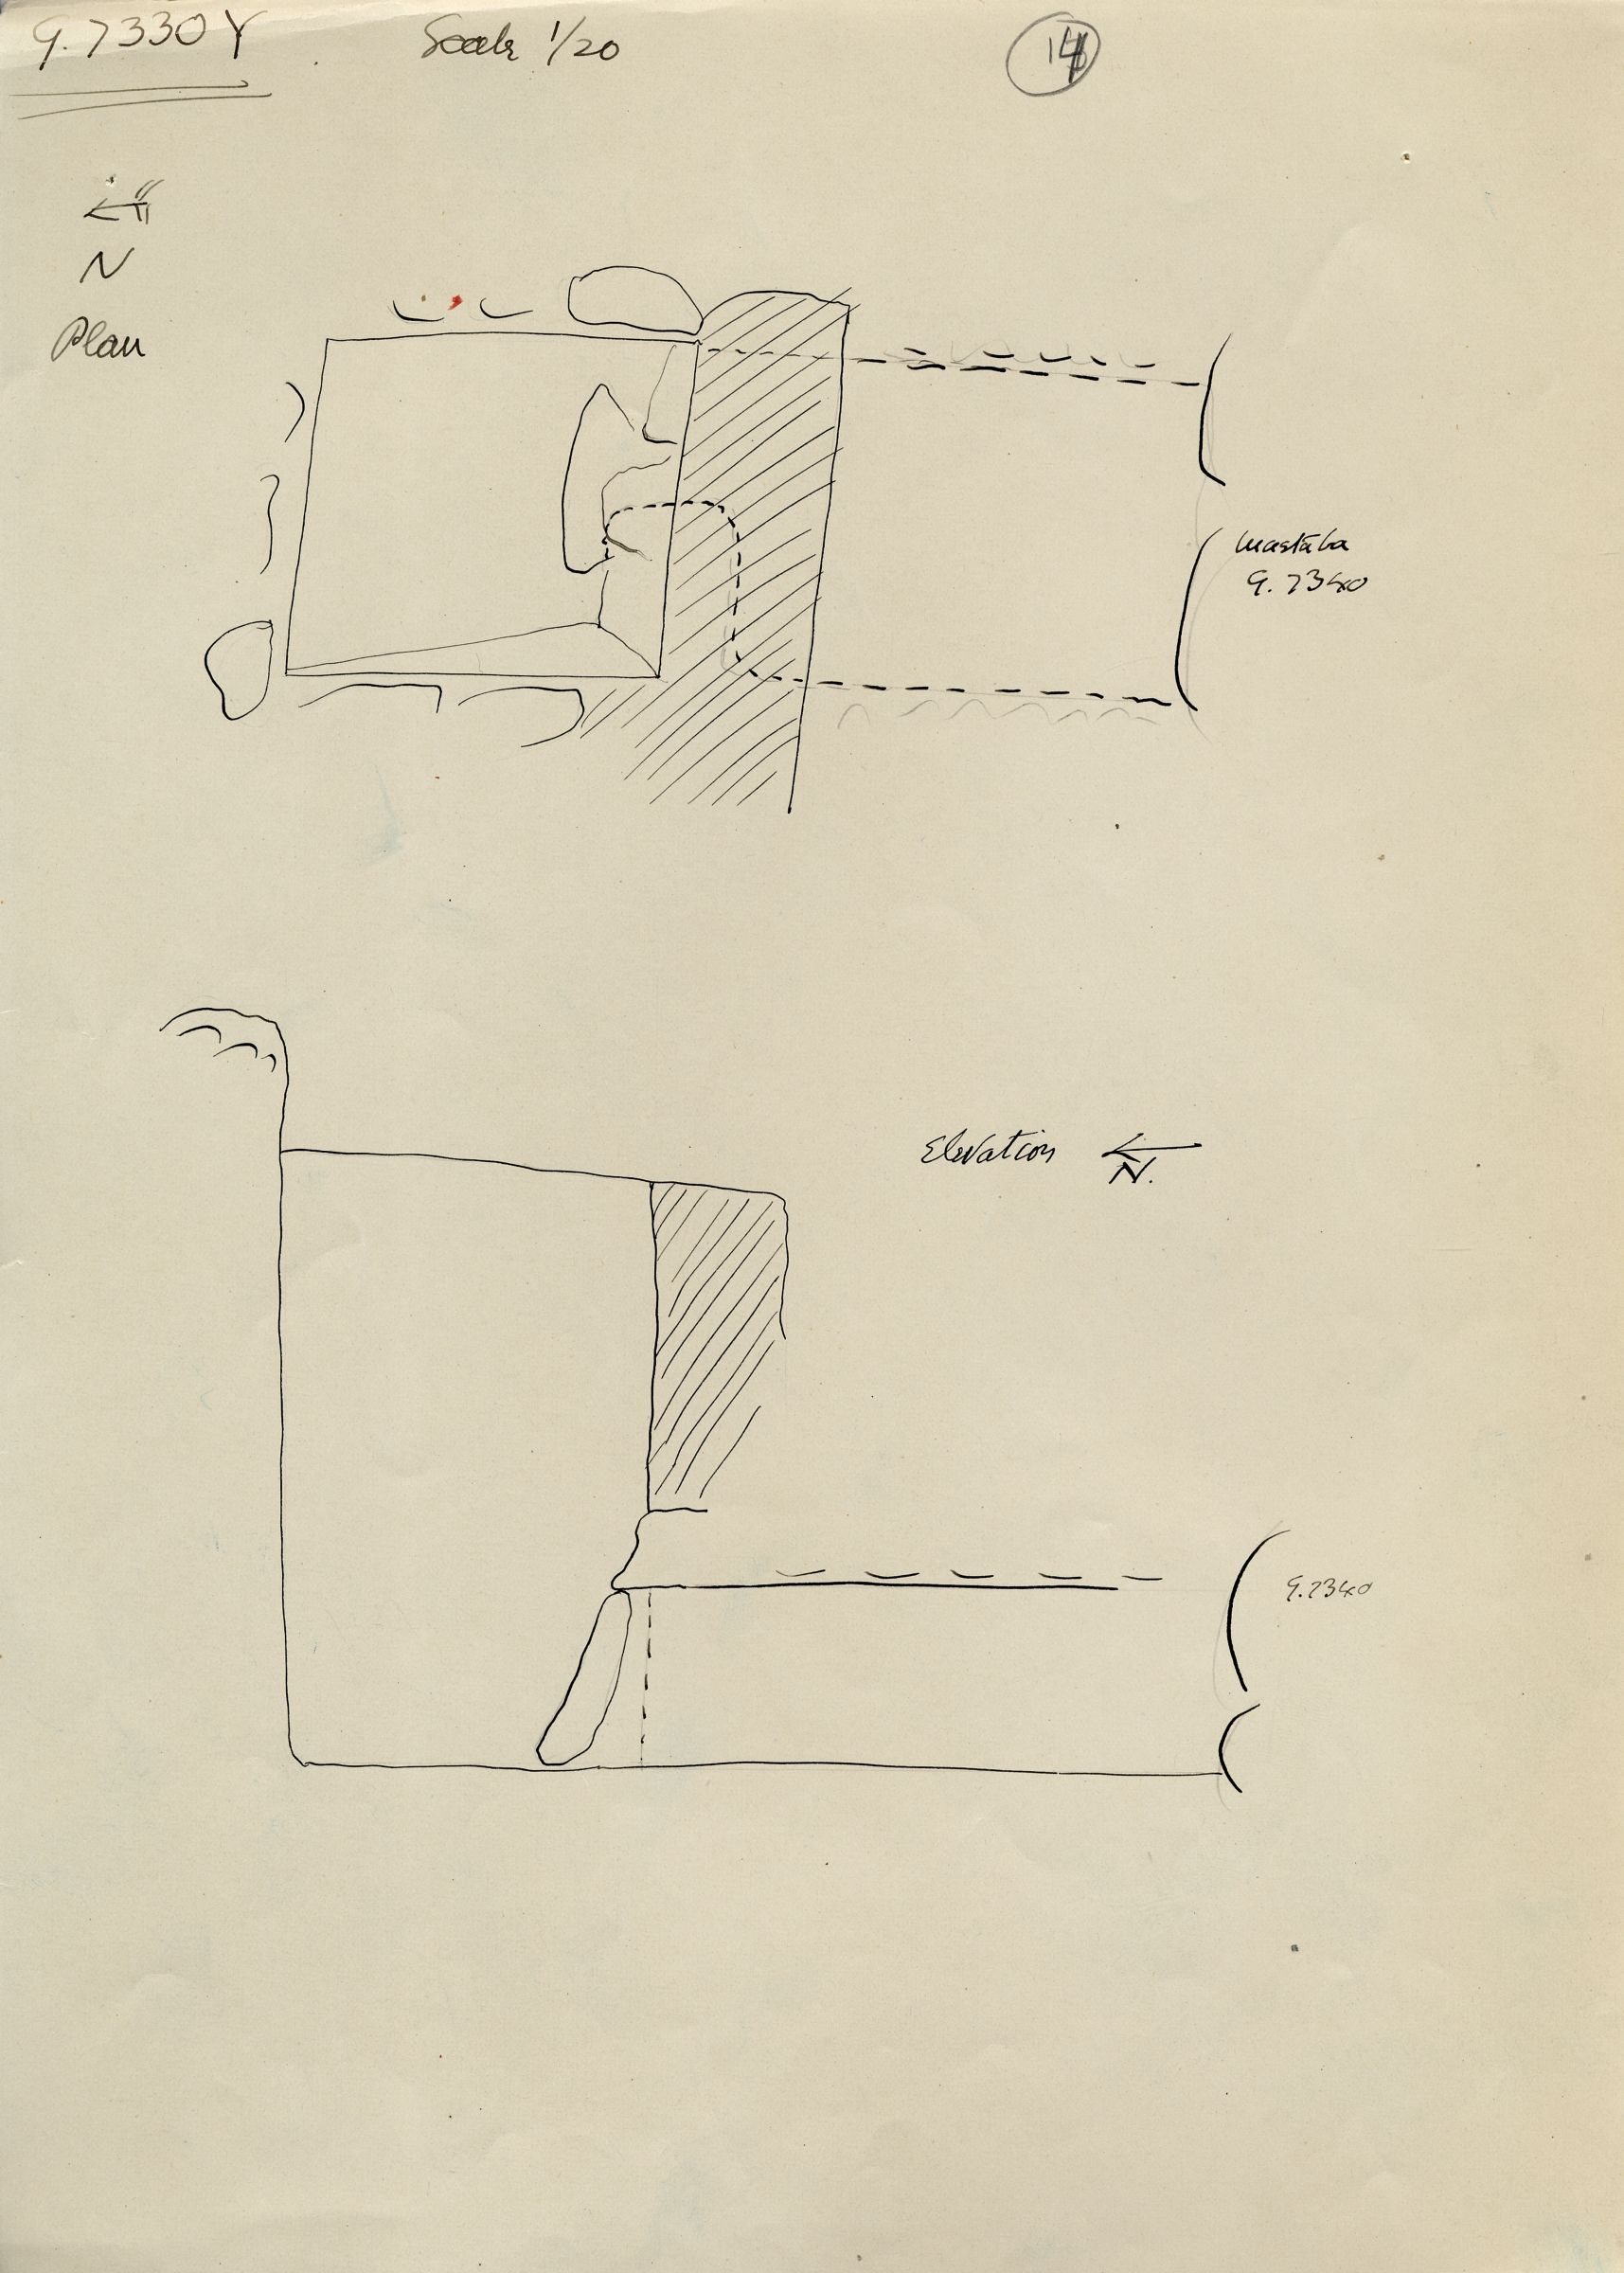 Maps and plans: G 7330-7340: G 7330, Shaft Y